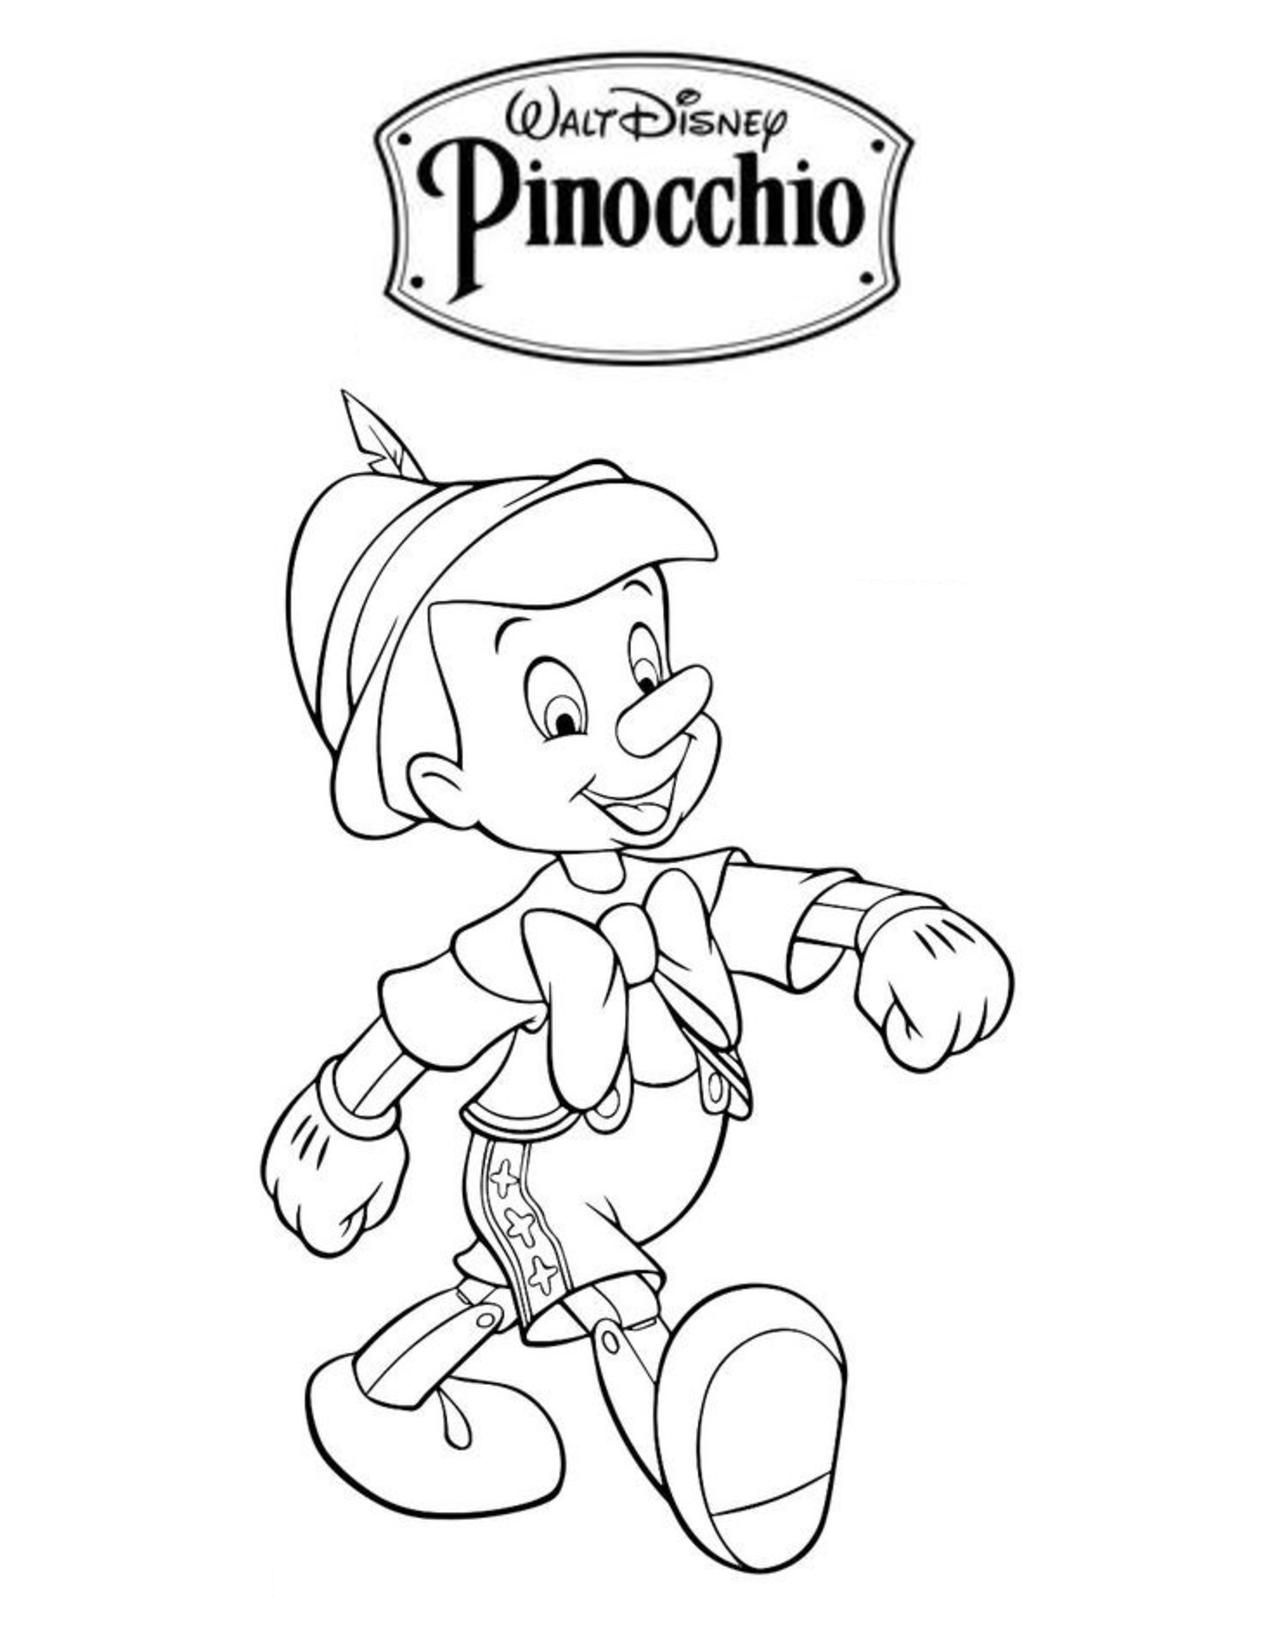 Pin On Disney Coloring Pages Movie Covers